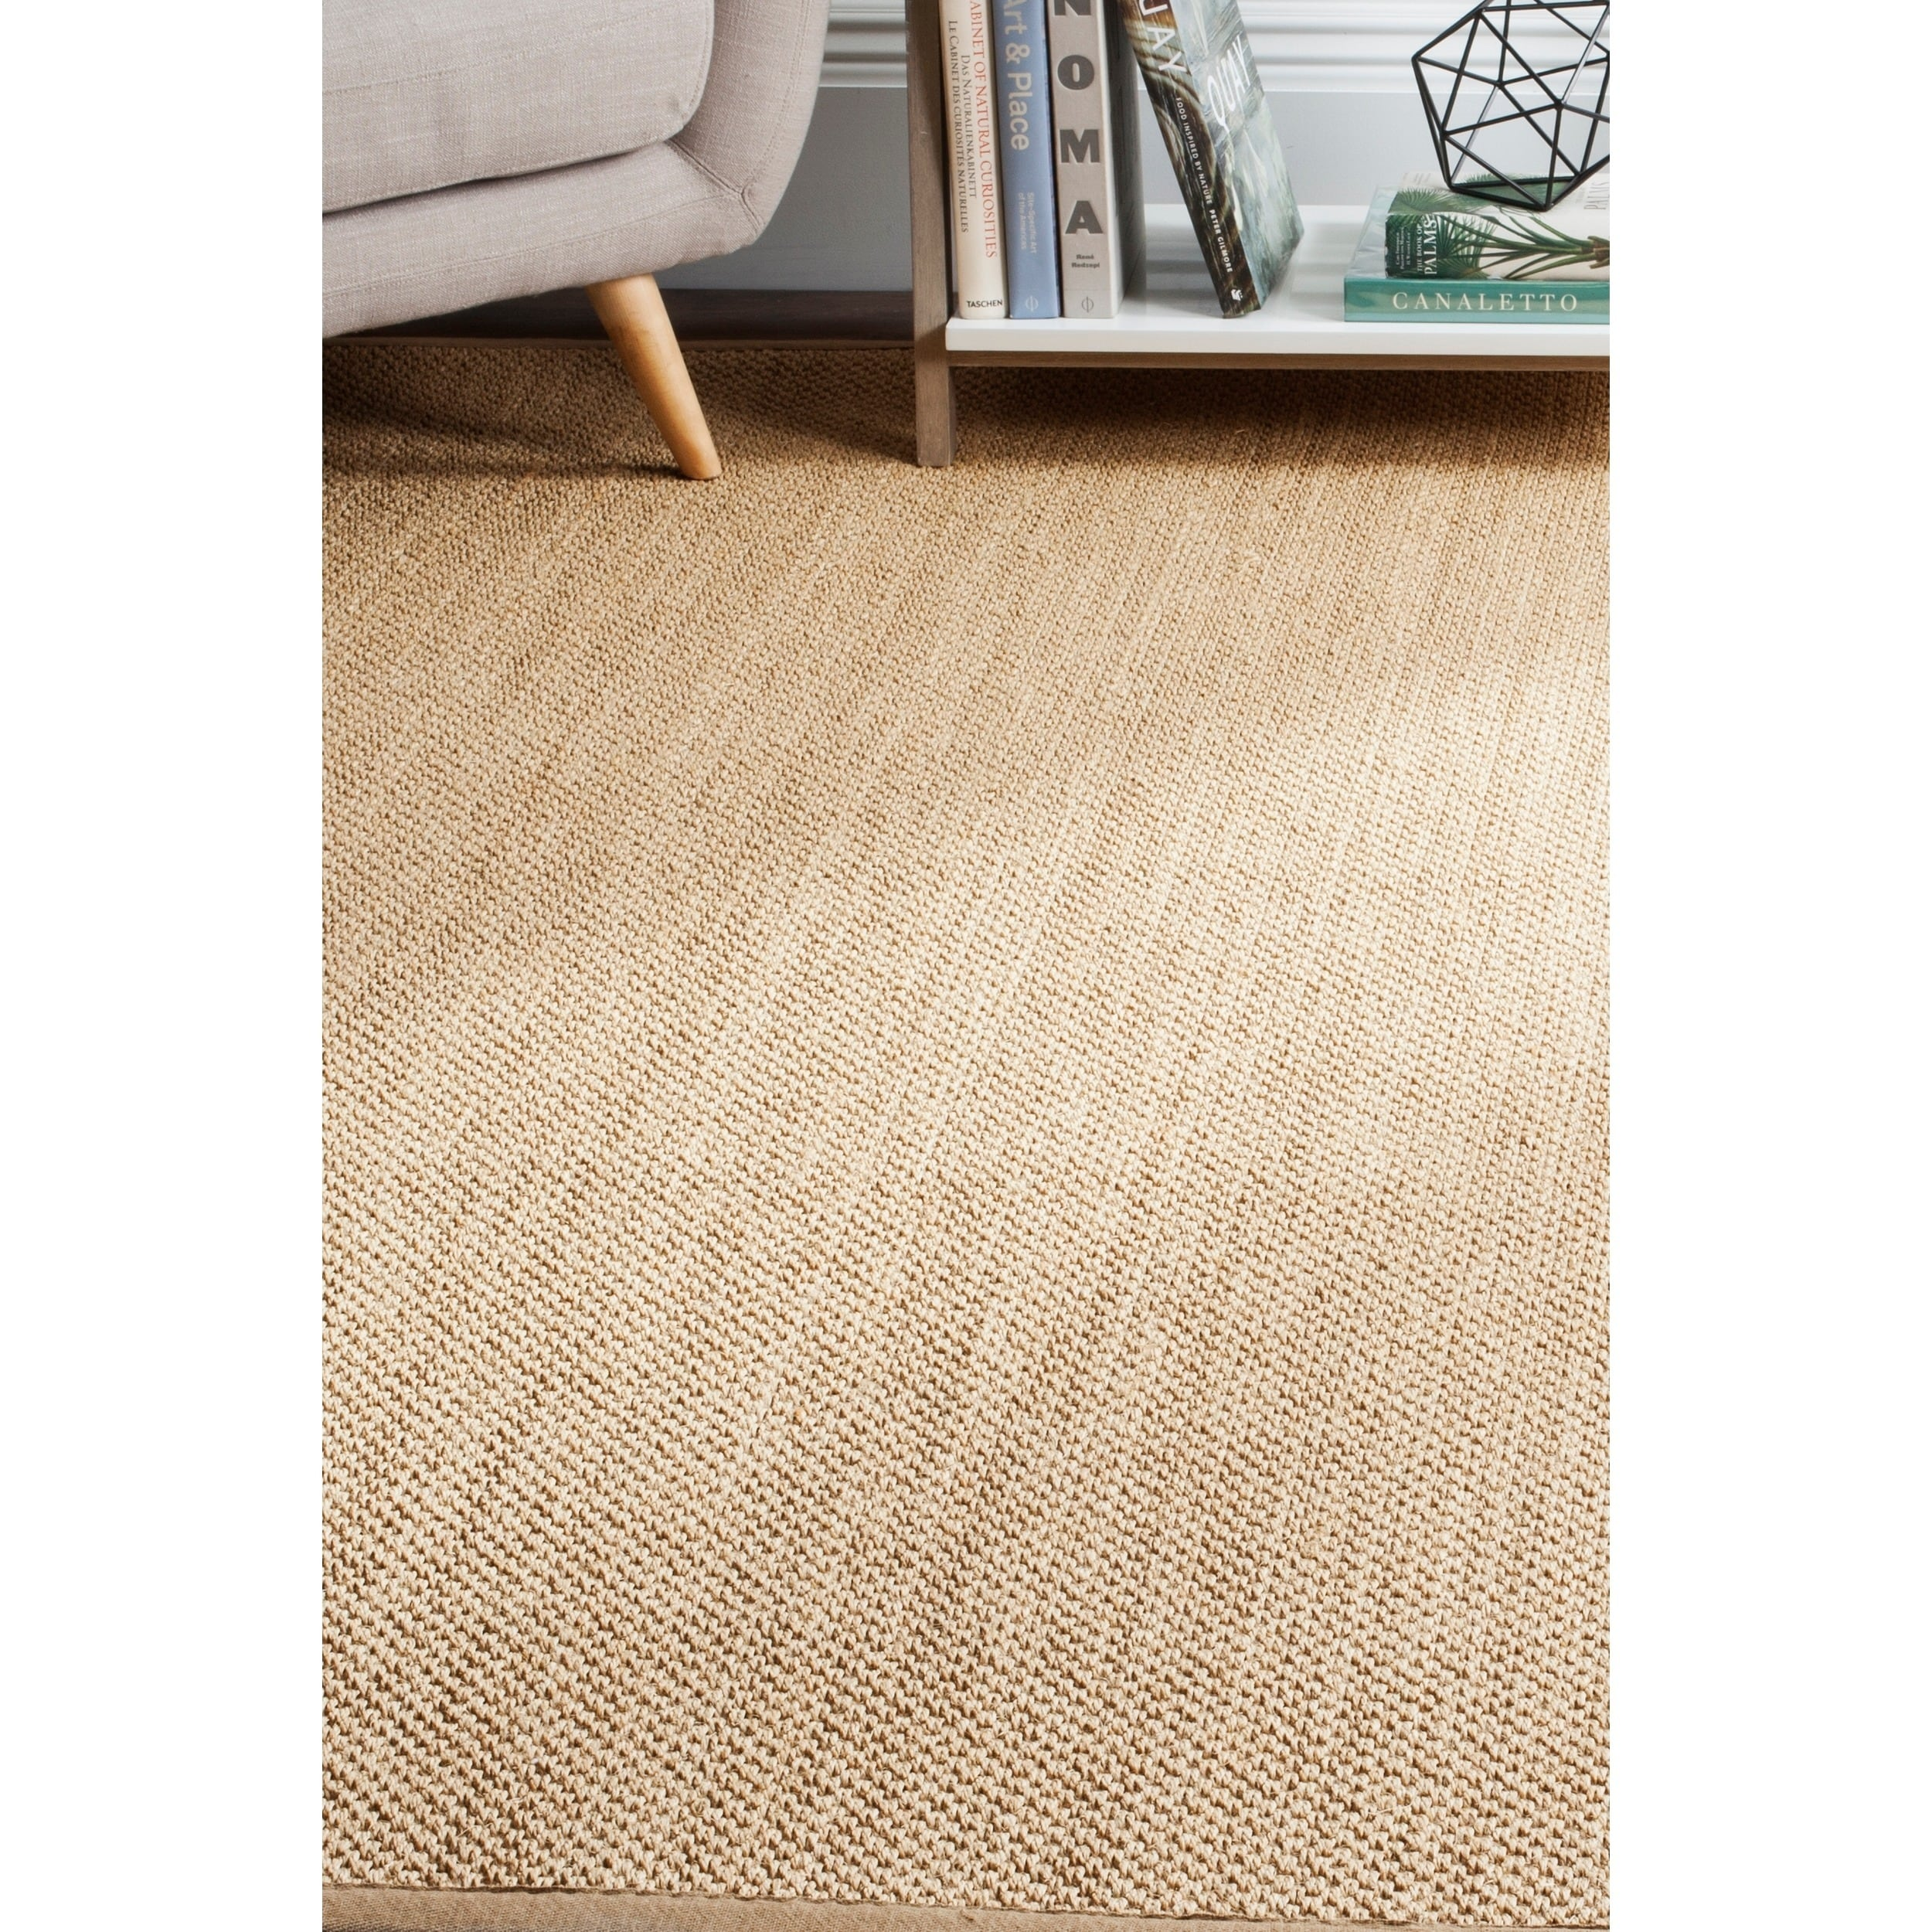 Safavieh Casual Natural Fiber Maize Ivory Linen Sisal Area Rug 8 X 10 Free Shipping Today 18054402